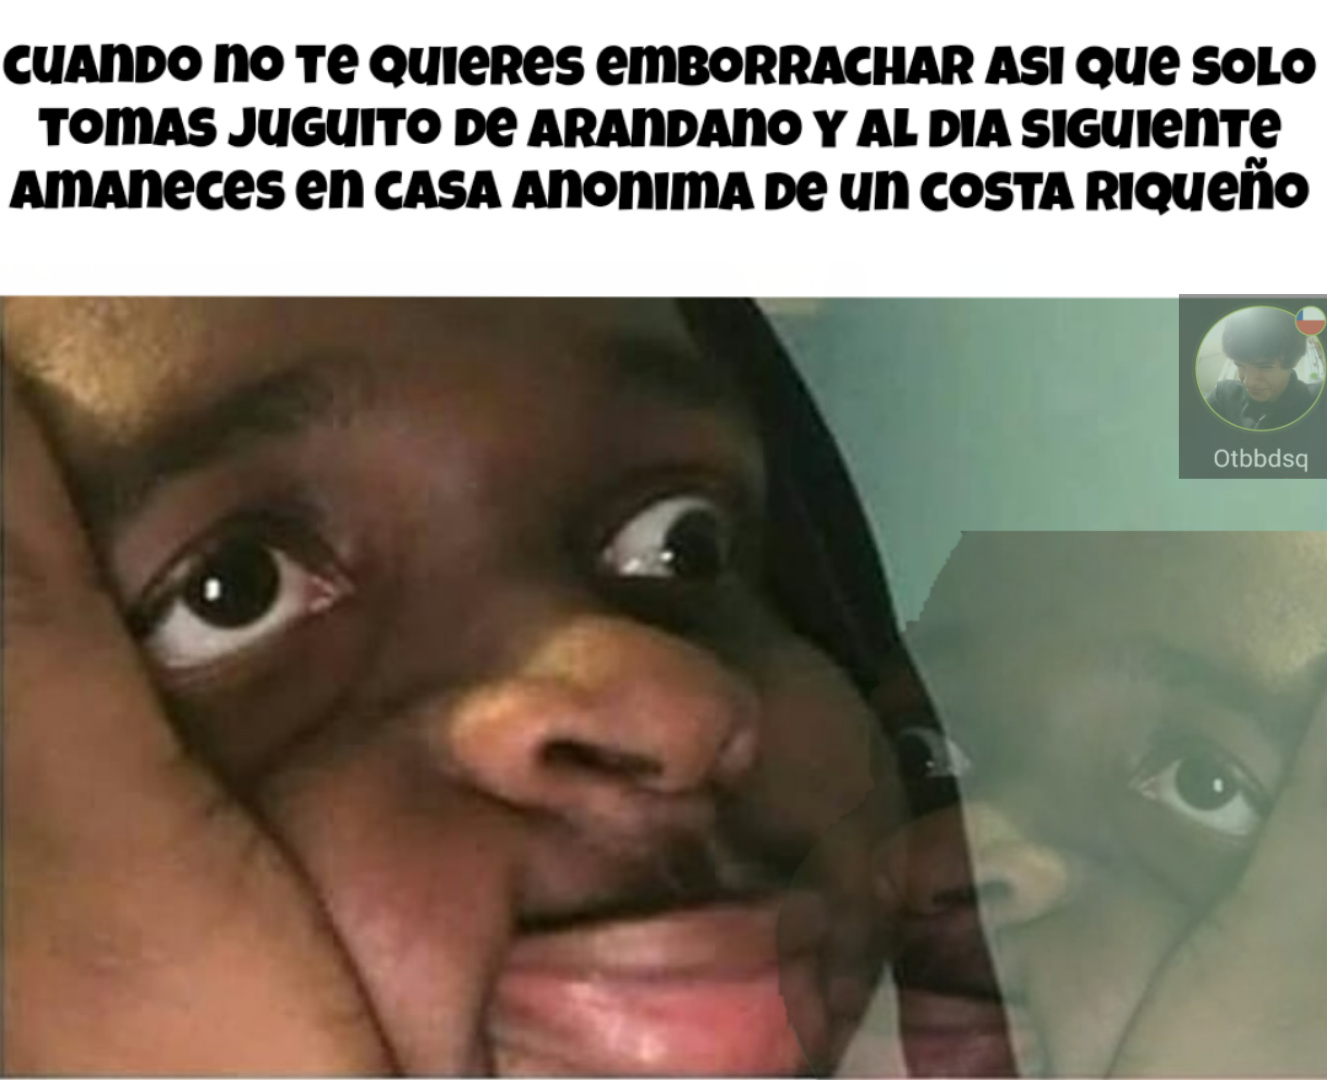 El que lee esto es bello ;) - meme